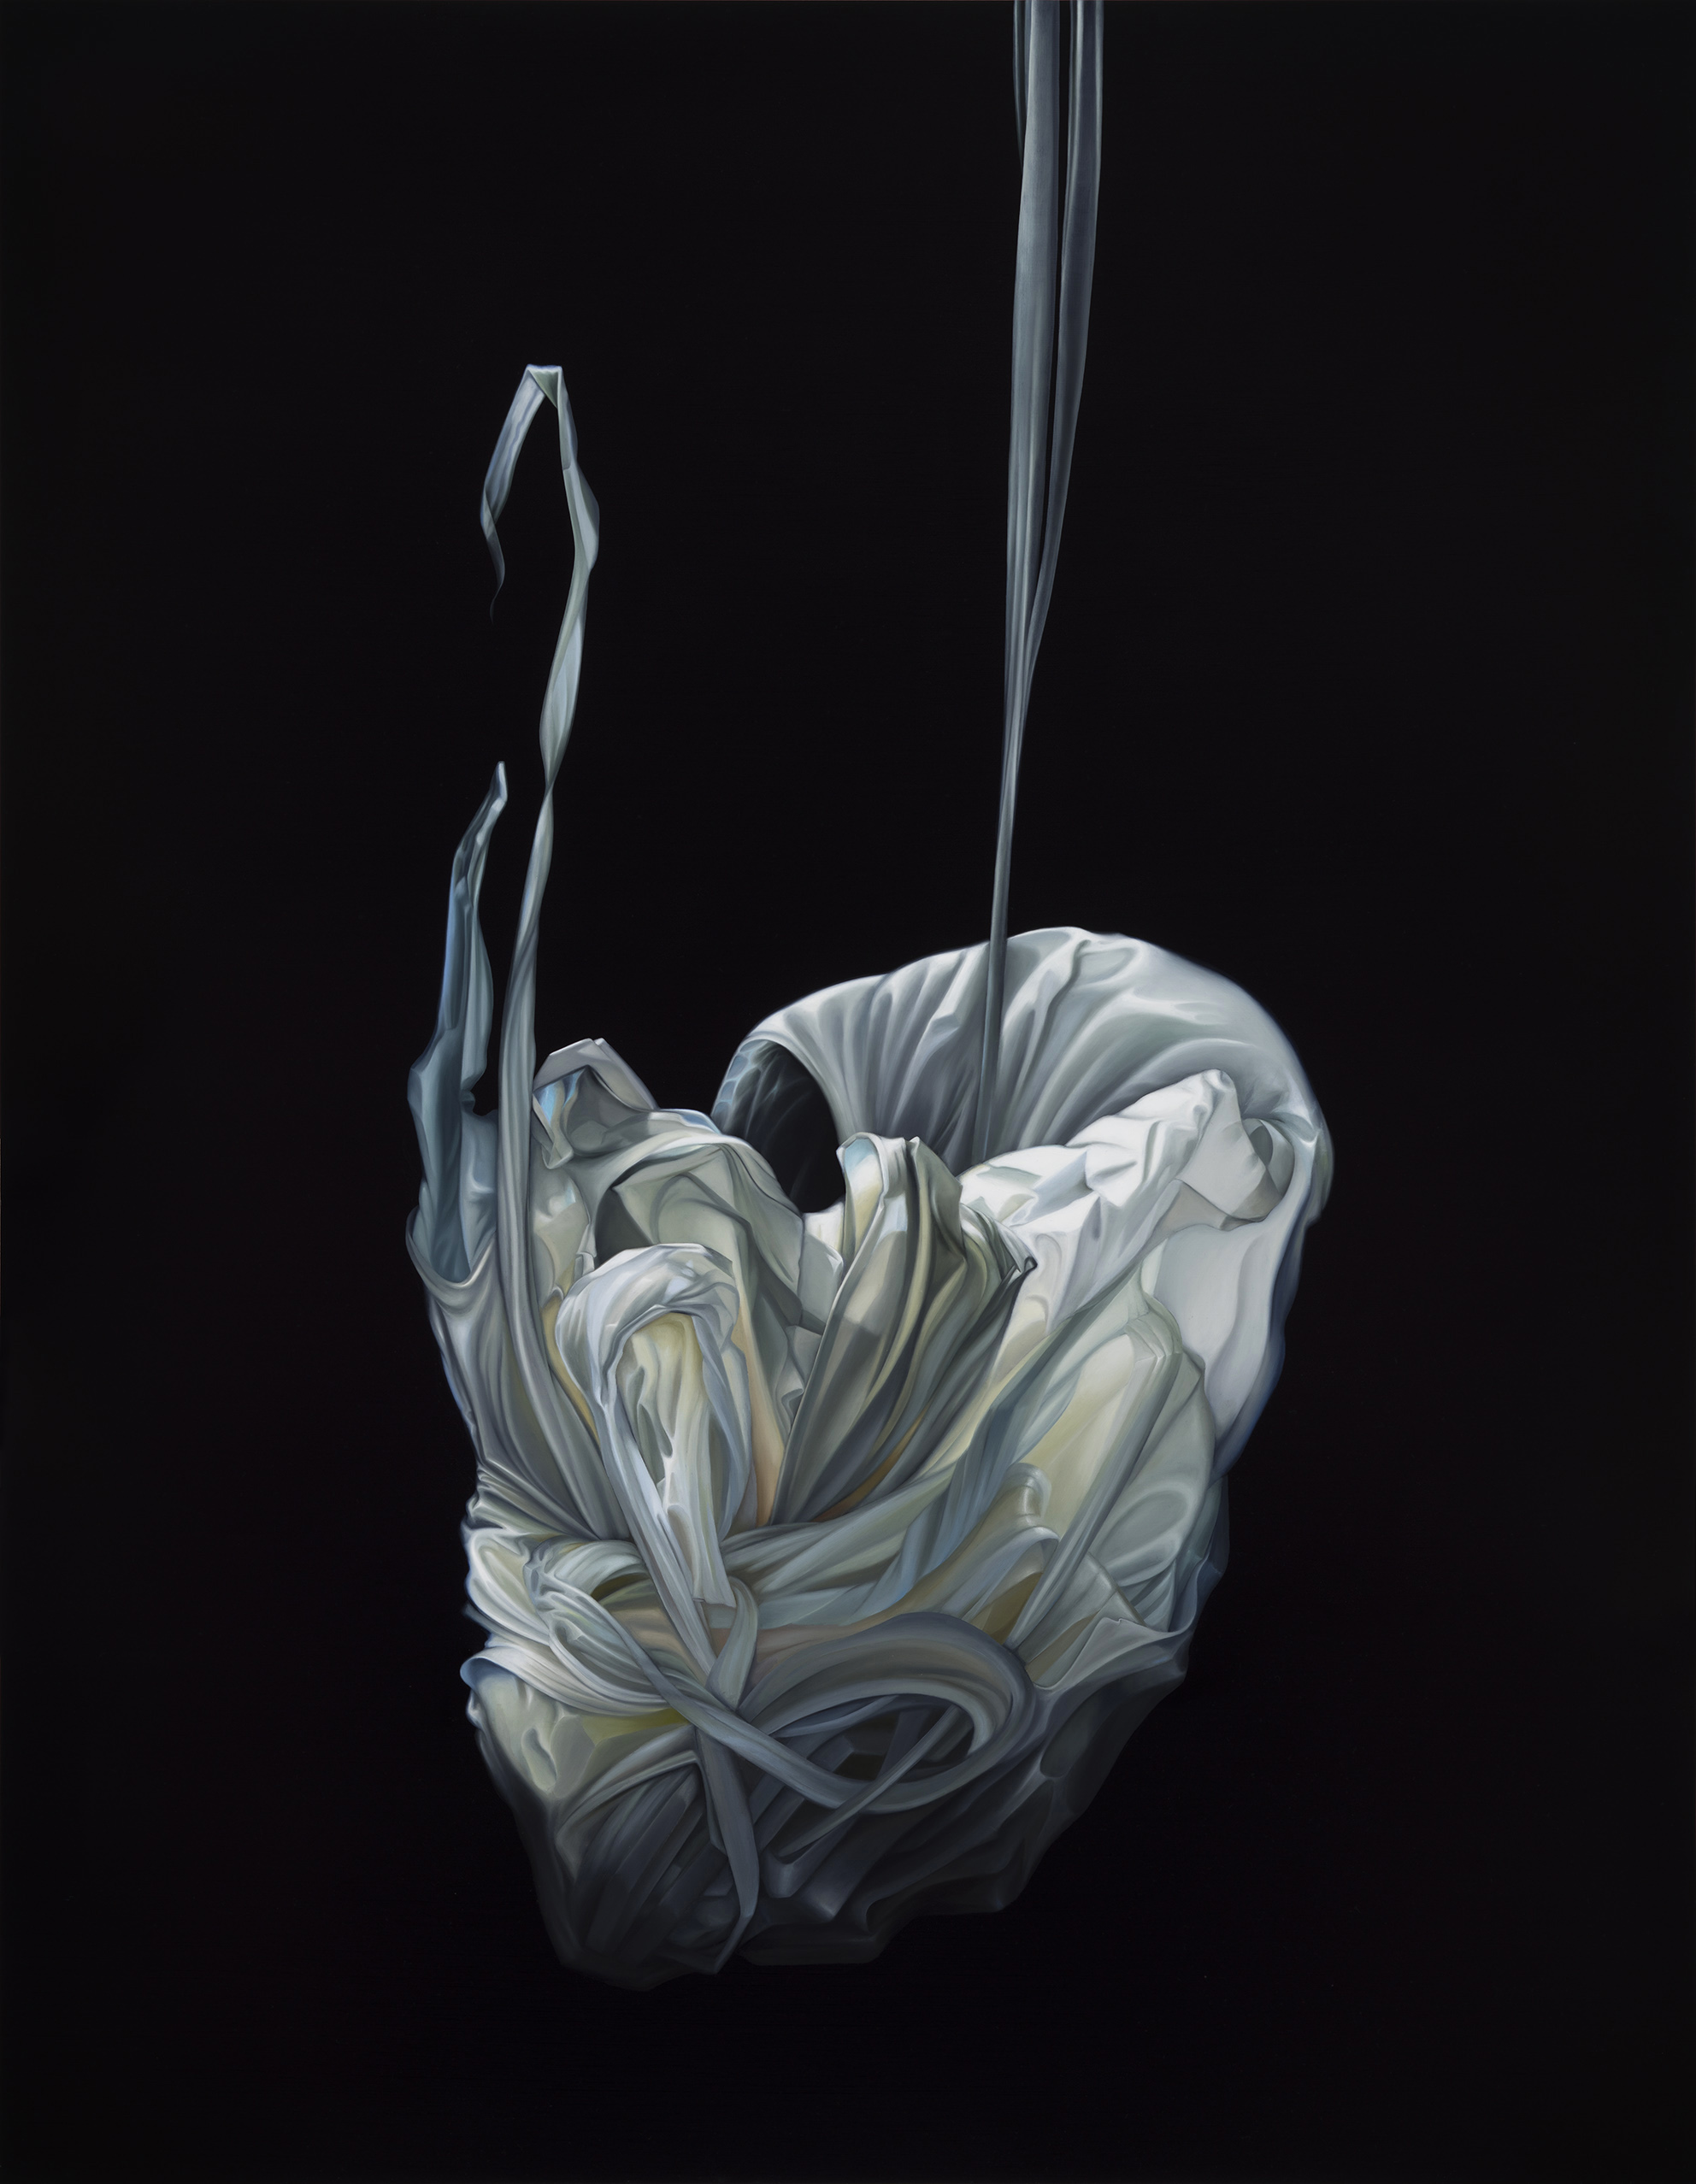 Copy of Untitled, 2015. Oil on board, 90 x 70 cm